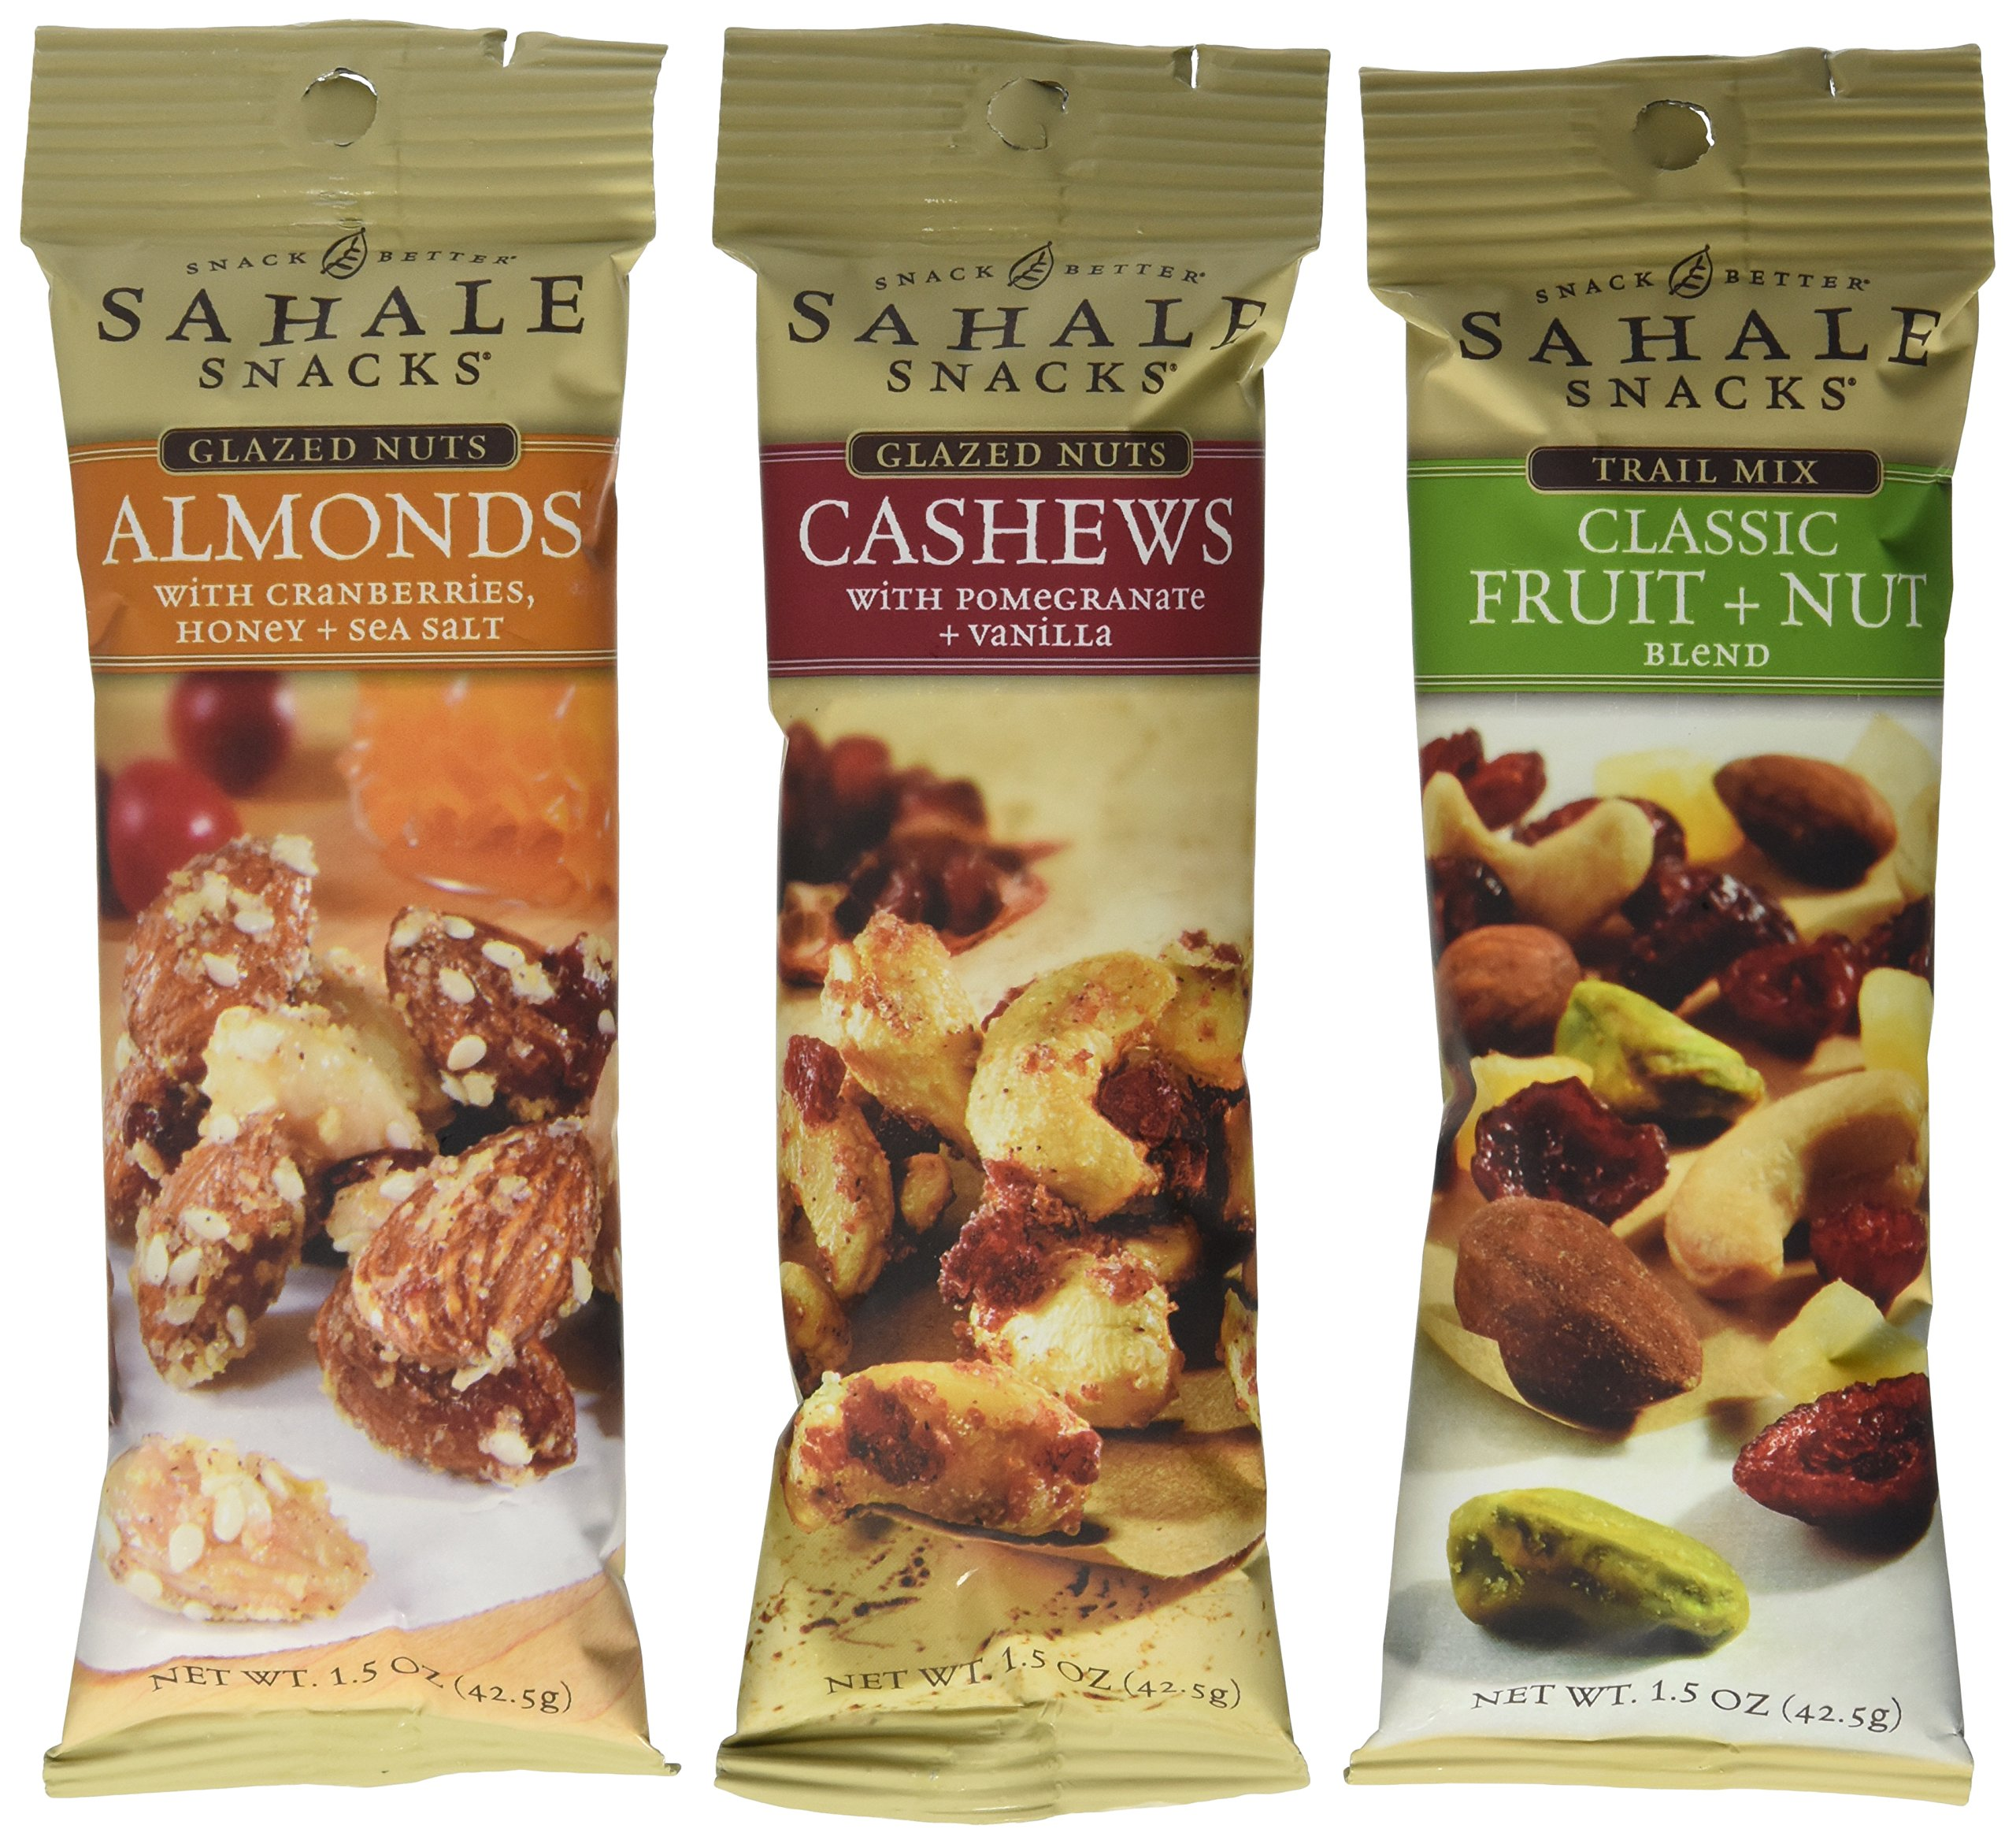 Sahale Snacks Grab And Go Nut Blends 3 Flavor Variety 6 Pack Bundle: (2) Sahale Snacks Almonds With Cranberries, Honey & Sea Salt, (2) Sahale Snacks Classic Fruit & Nut Trail Mix Blend, and (2) Sahale Snacks Cashews With Pomegranate & Vanilla, 1.5 Oz. Ea. (6 Bags Total)